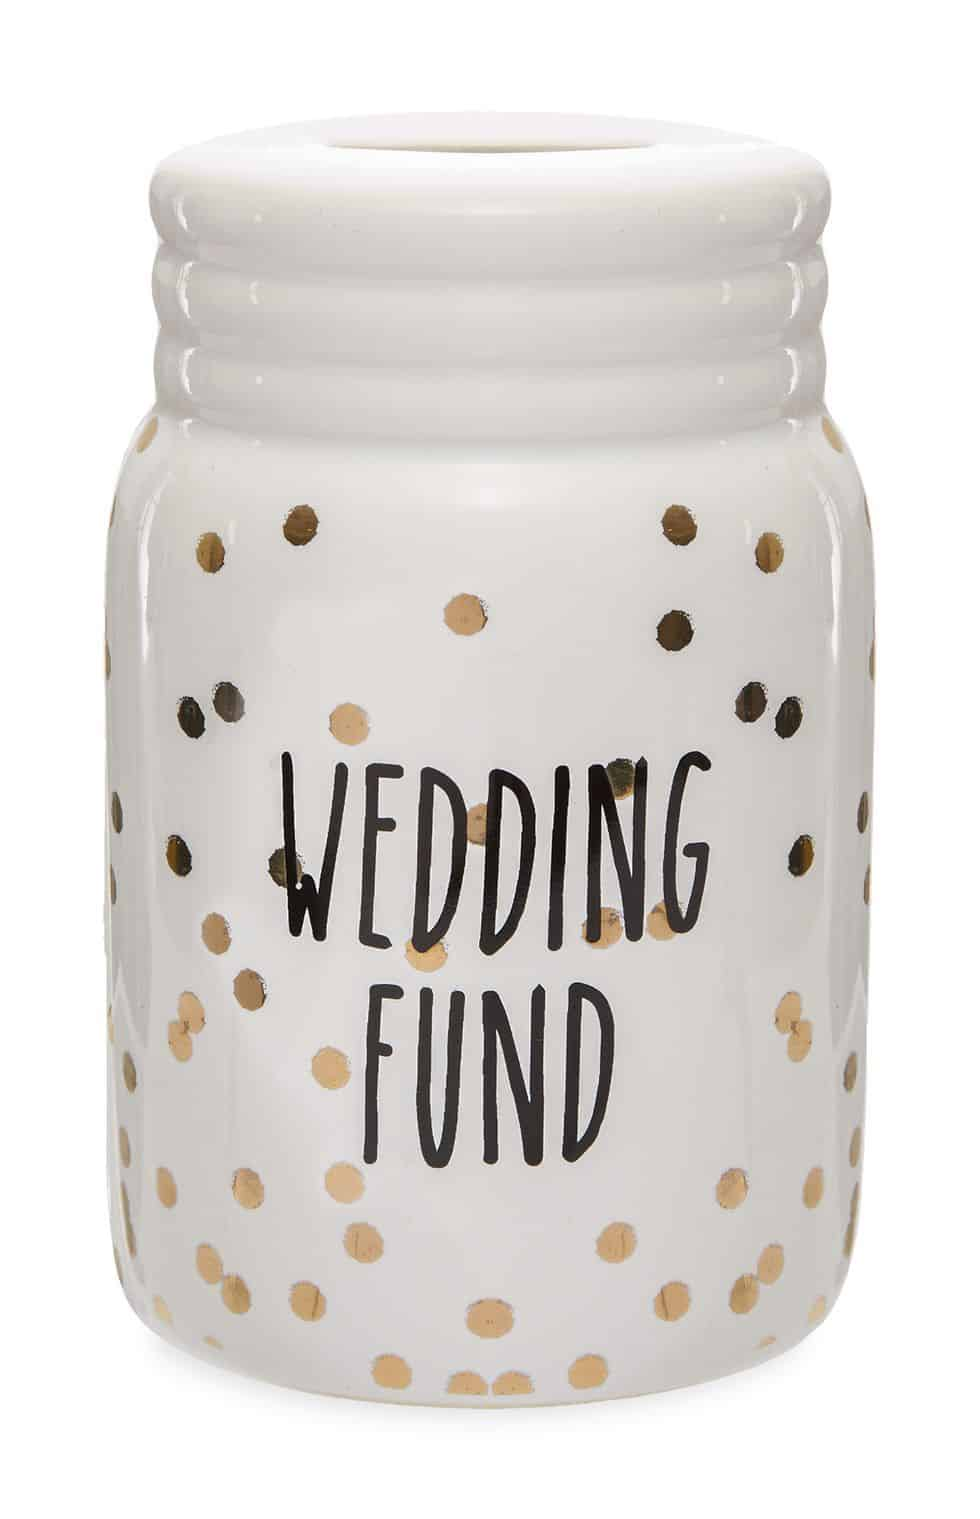 primark wedding fund jar